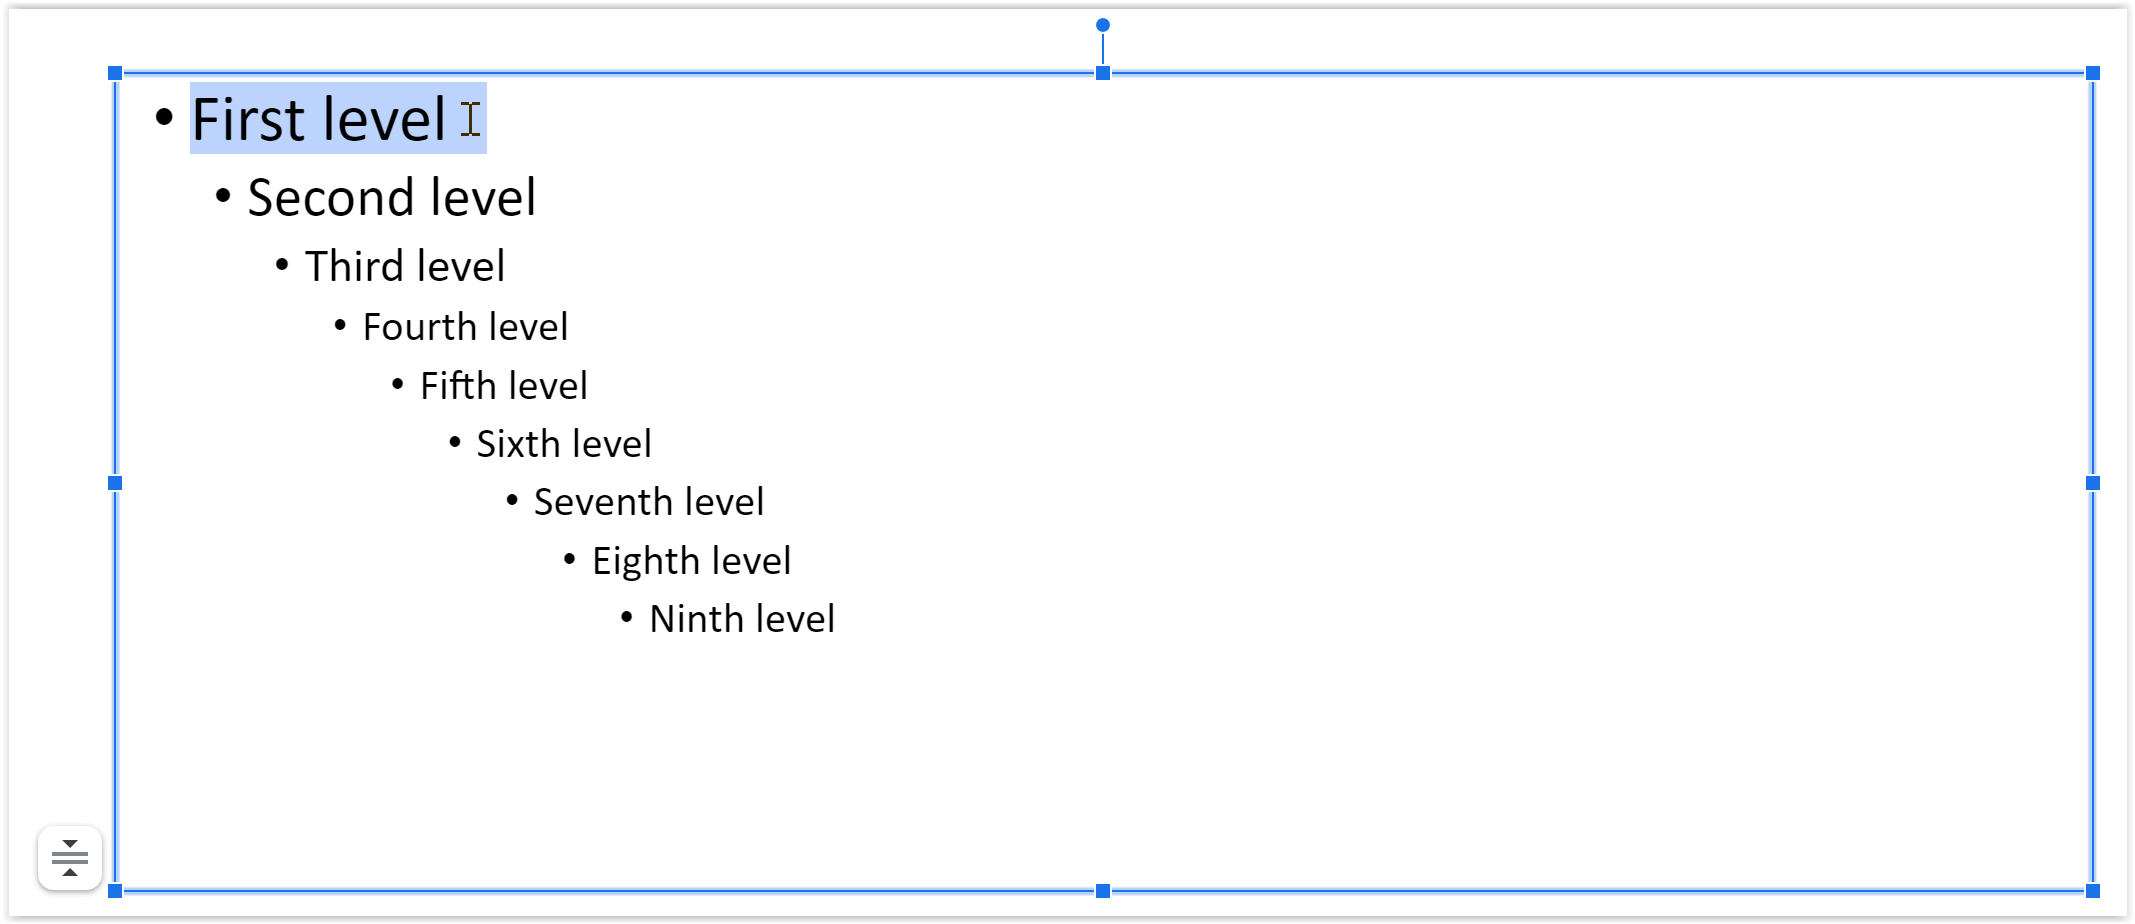 First level bullets highlighted